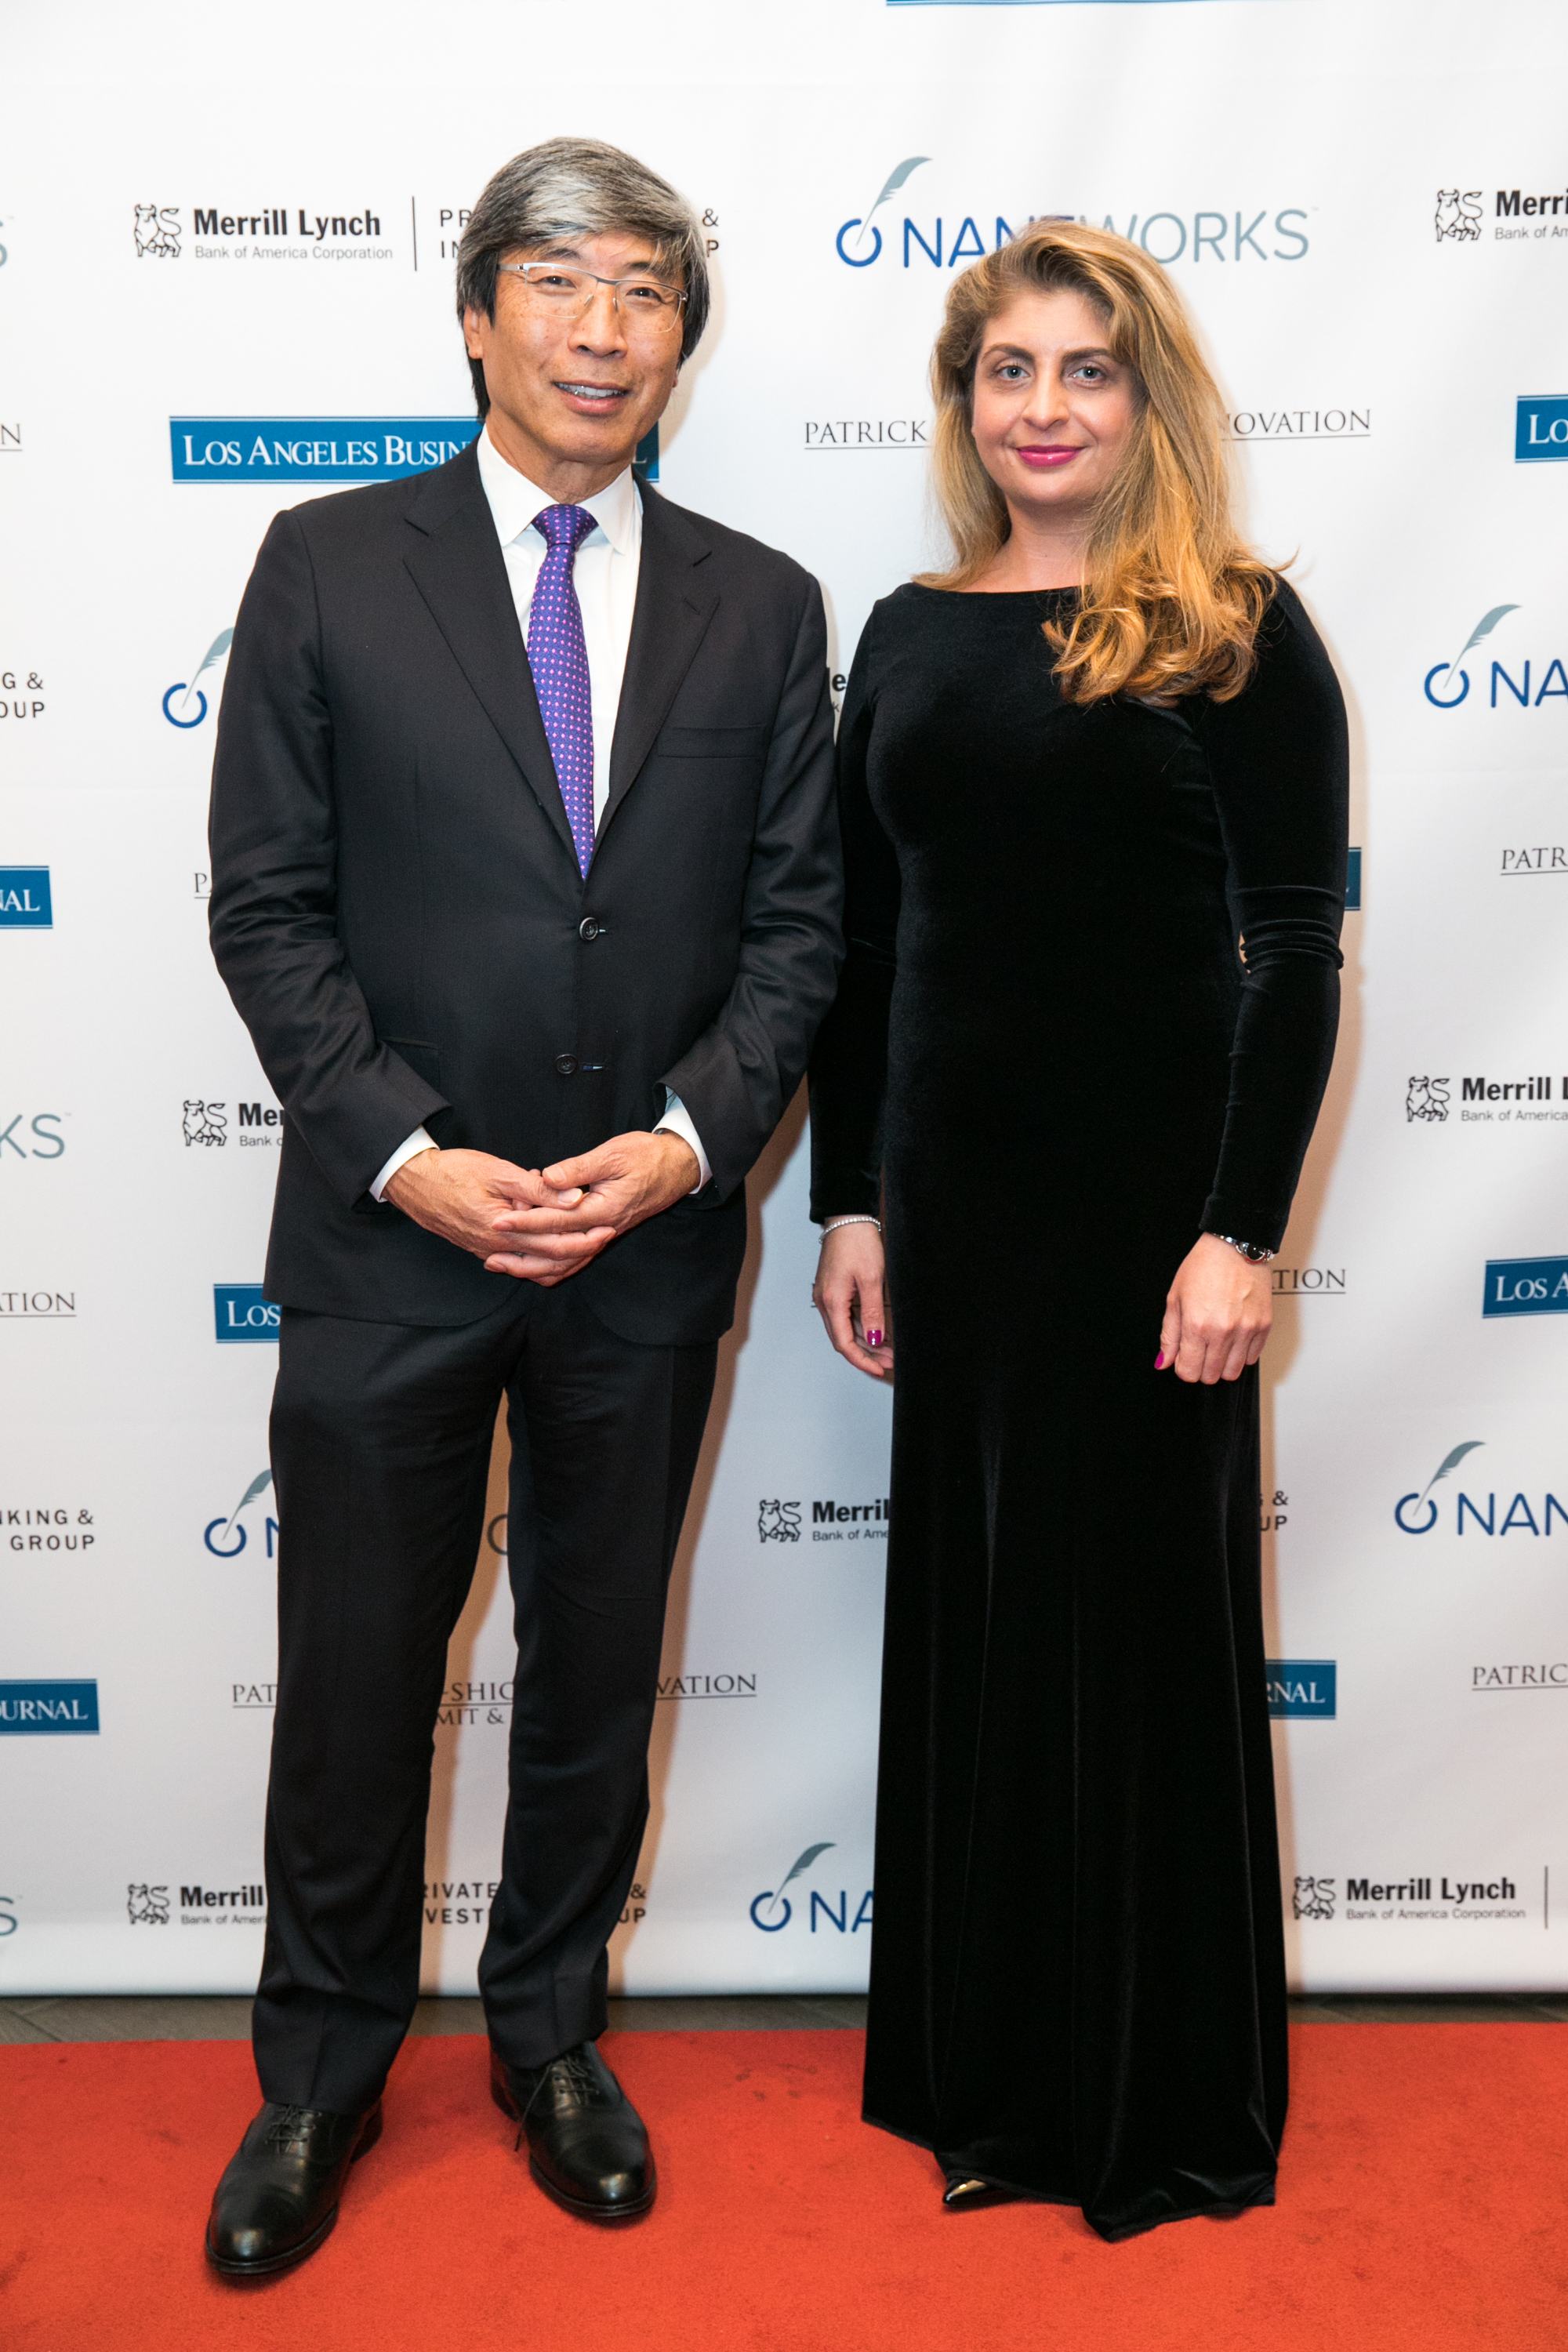 Dr. Patrick Soon-Shiong and Andreea Popa, Director, Marketing & Communications, Intrepid